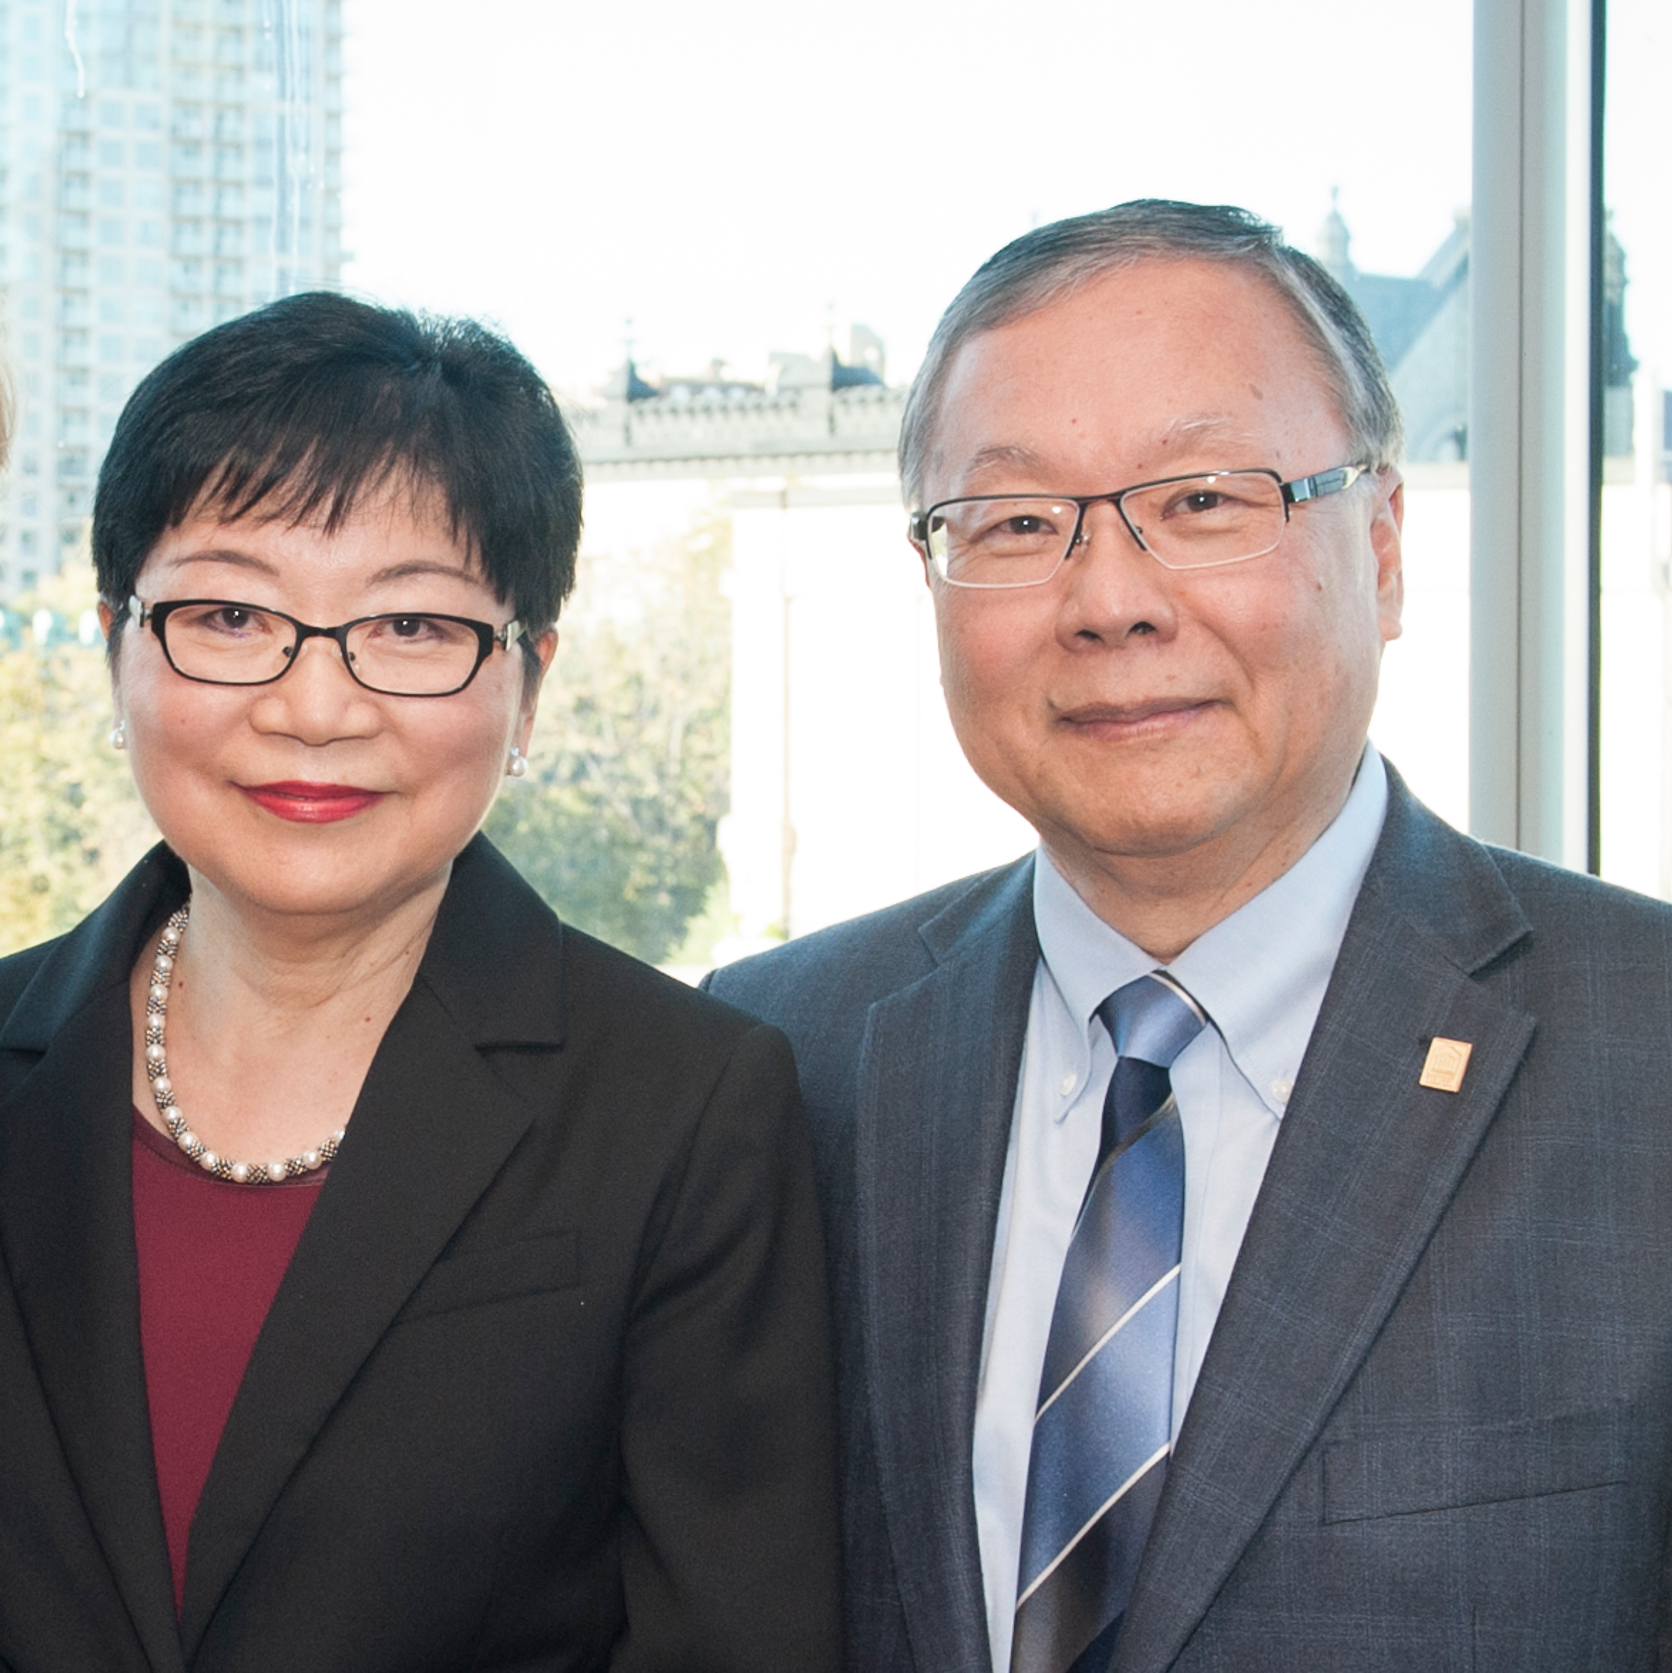 Lilian Goh and Swee Chua Goh